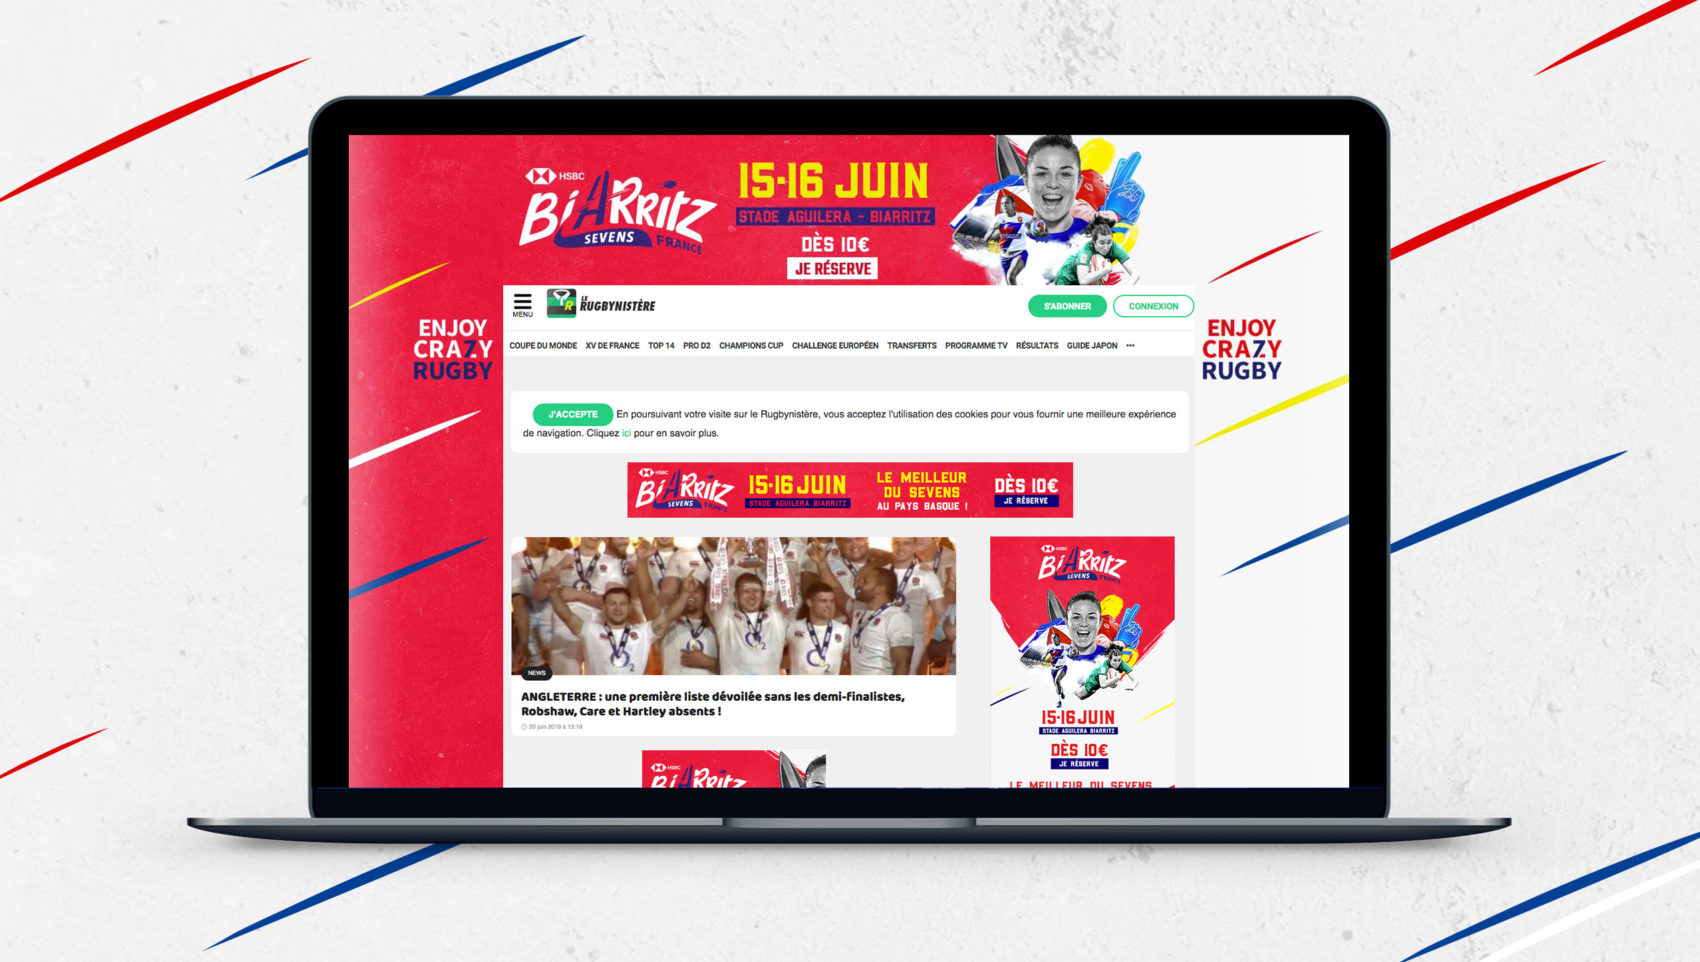 Projet_visuel_6_Federation_Francaise_Rugby_Paris_Biarritz_sevens_french_rugby